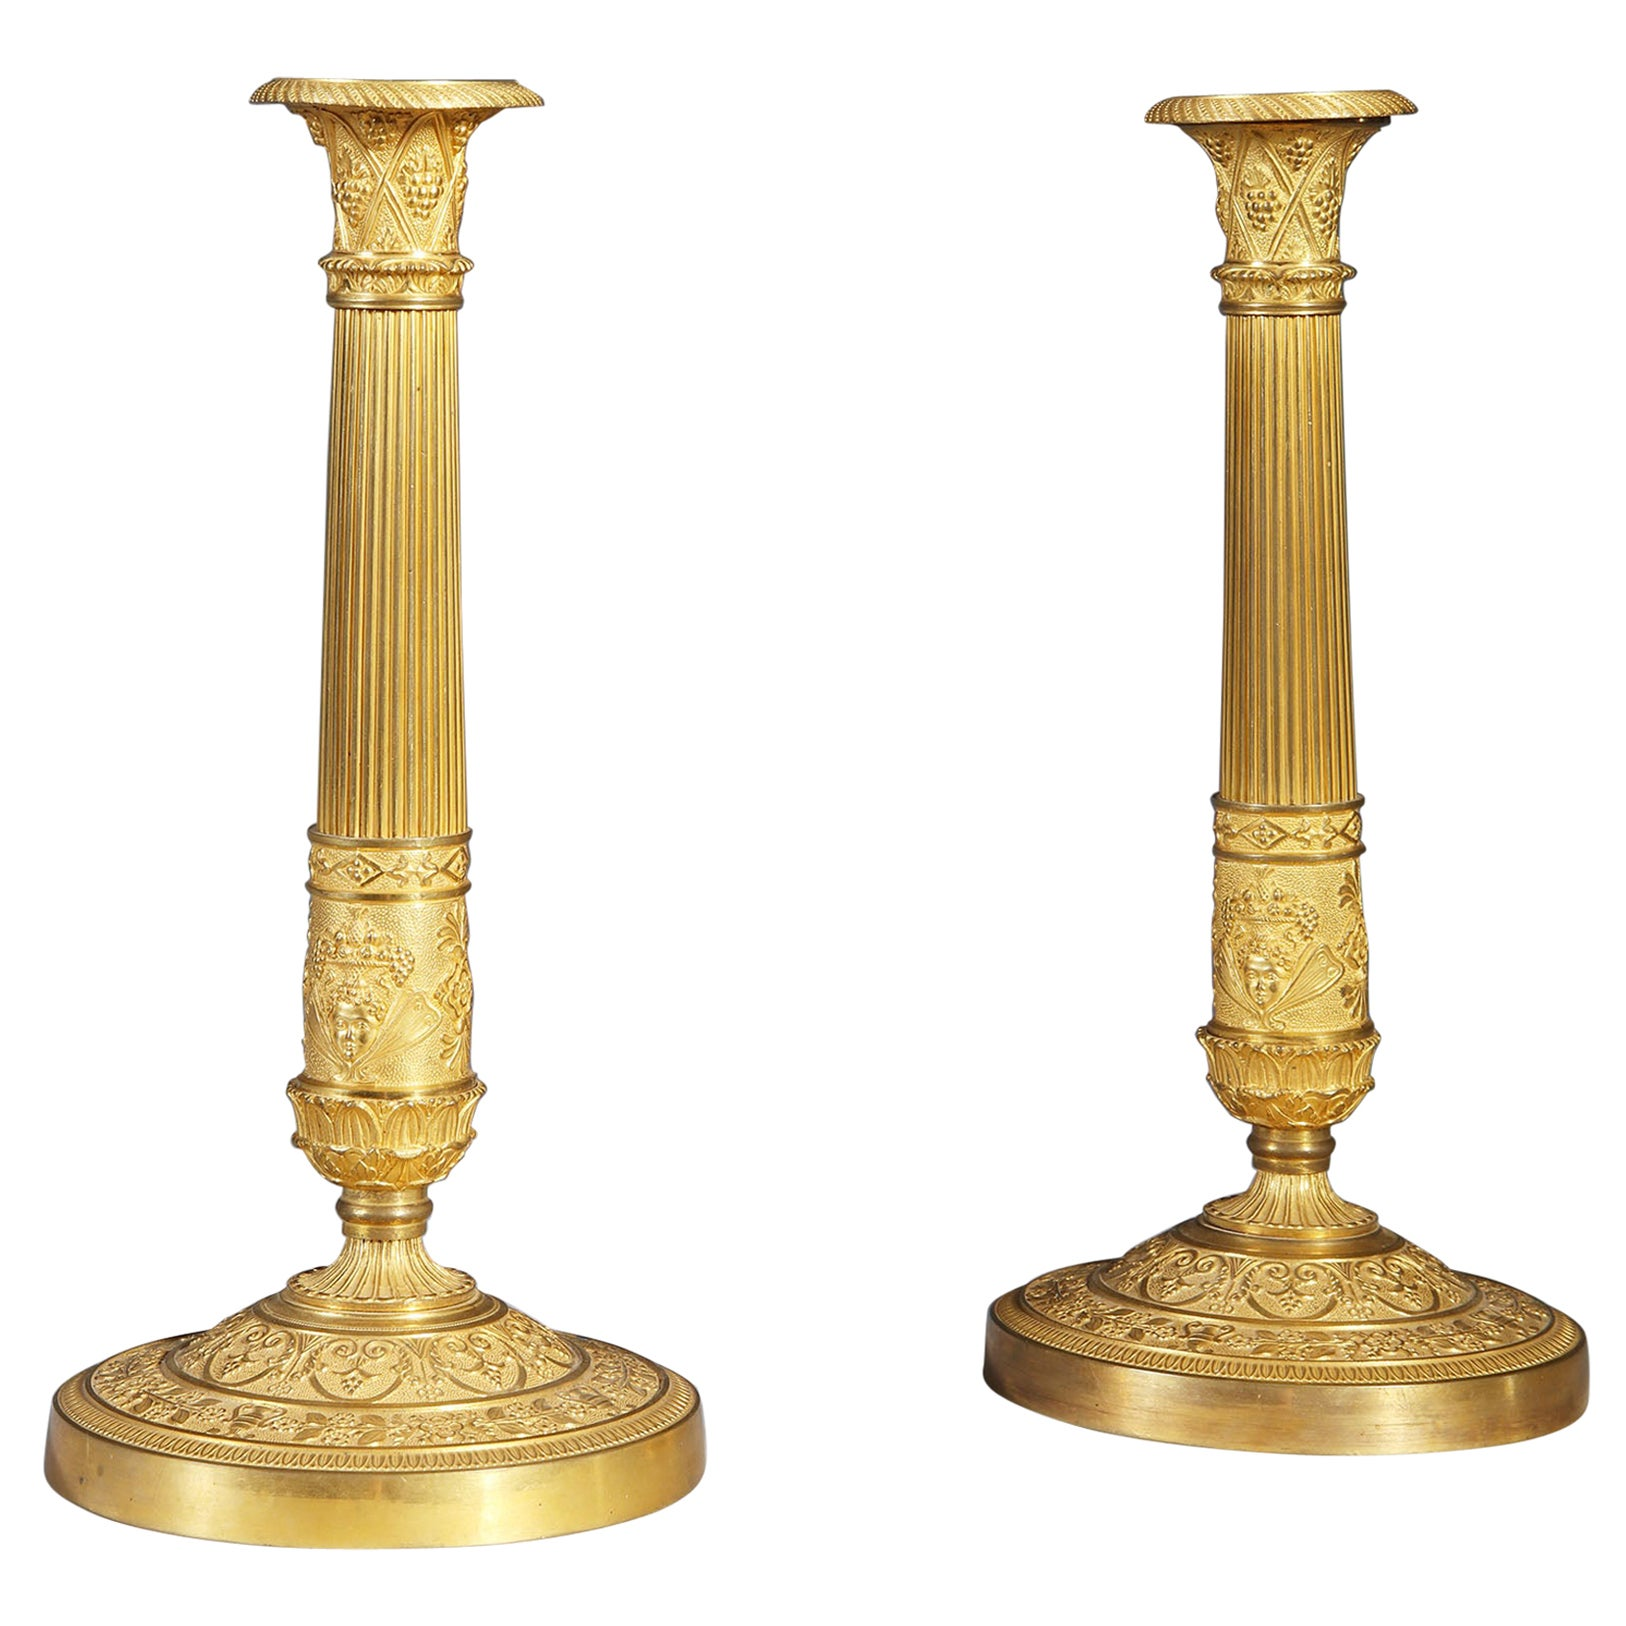 Pair of French Empire Candlesticks, Gilt Bronze, Early 19th Century